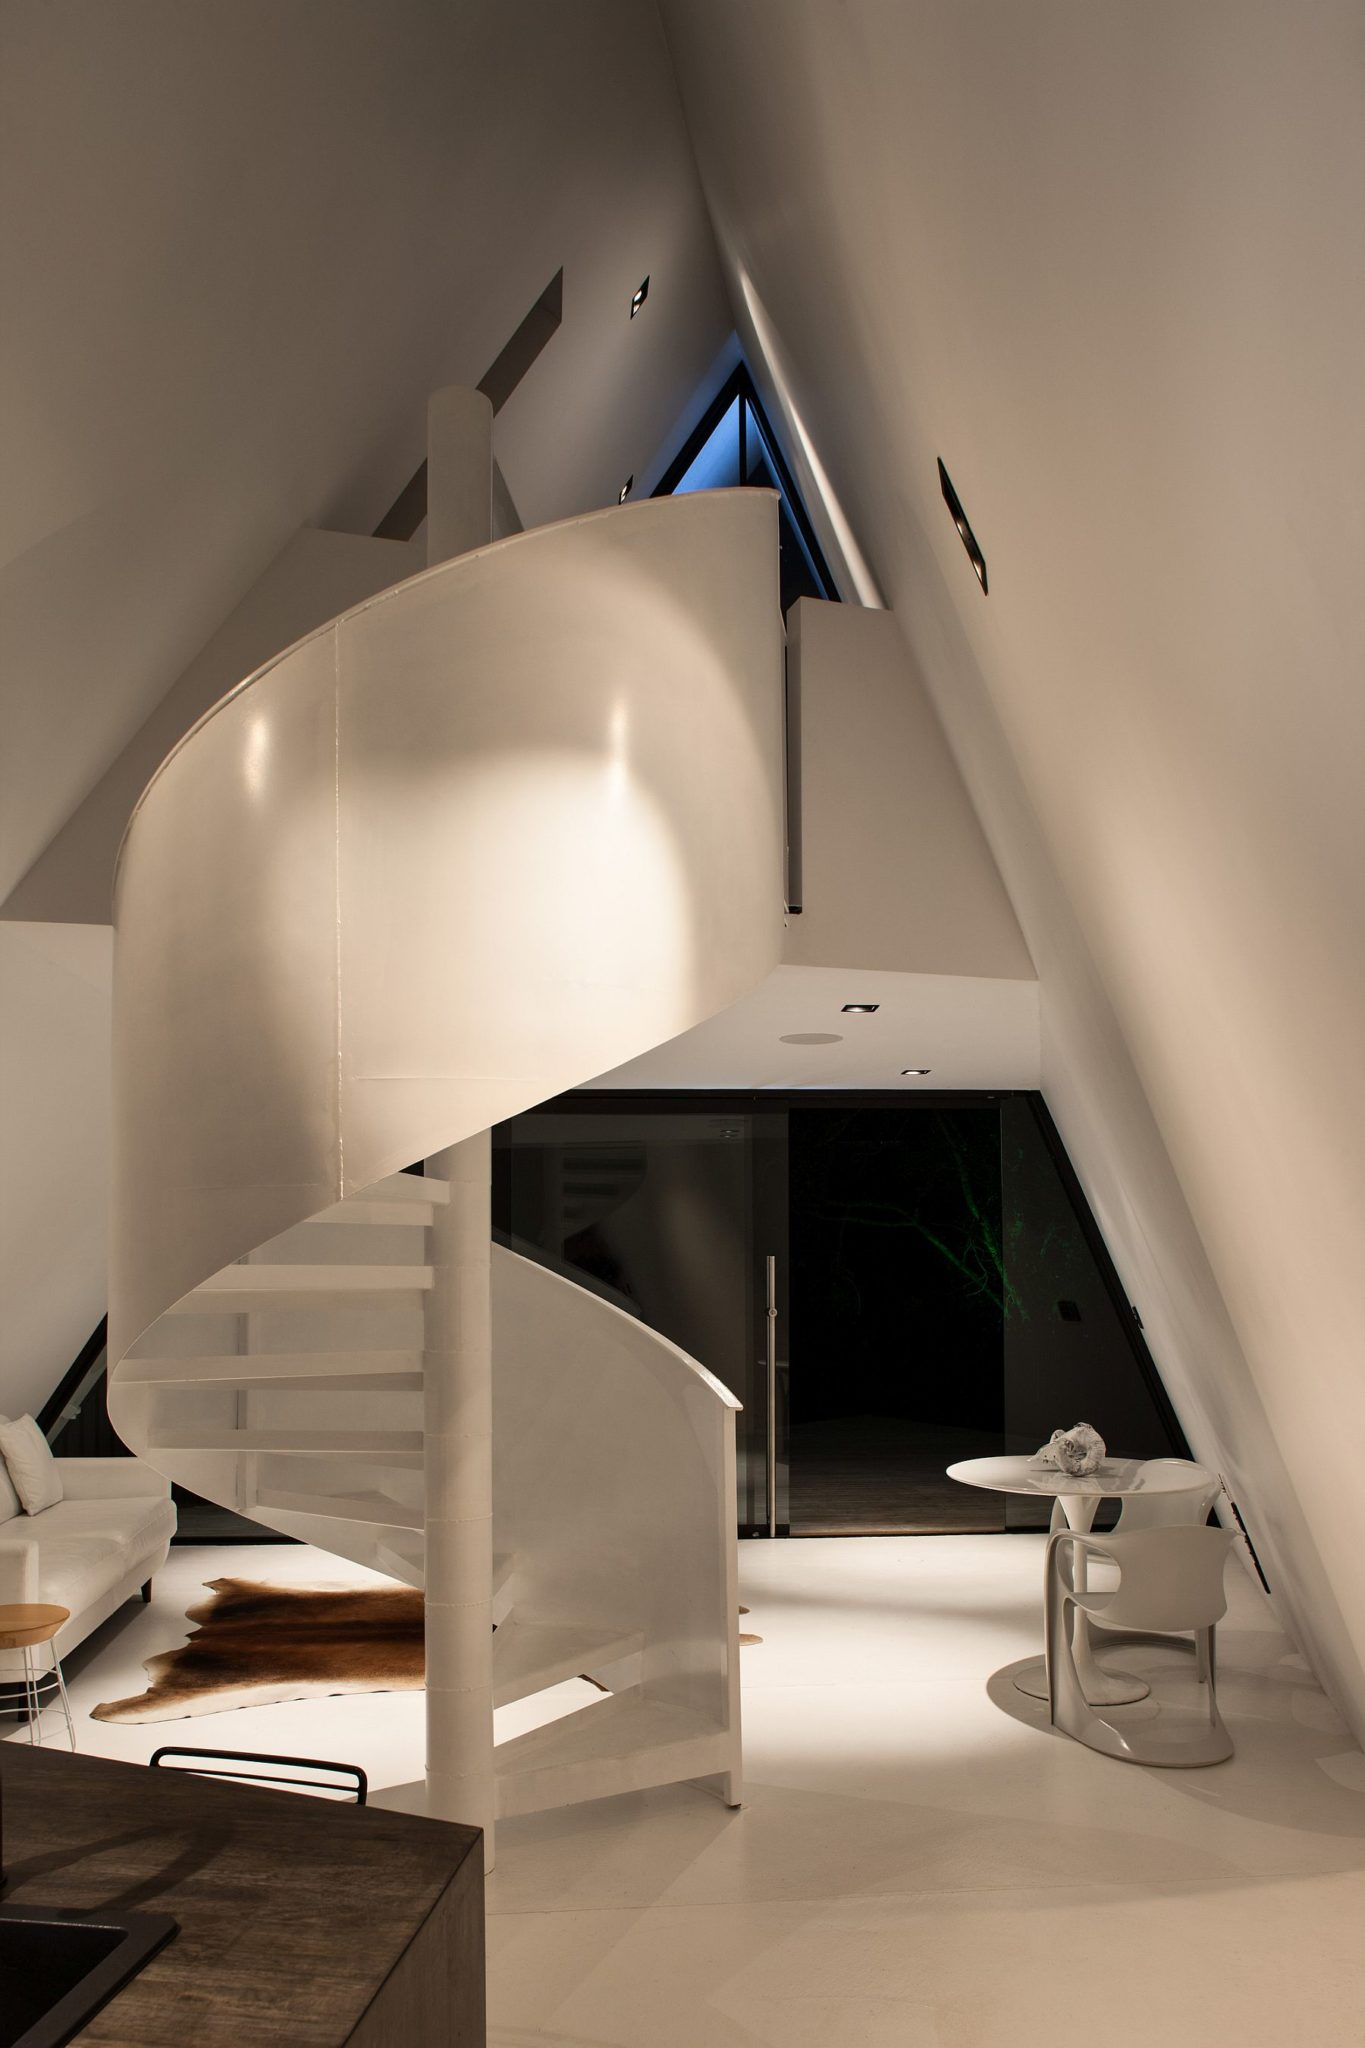 Contemporary interior in white with spiral staircase